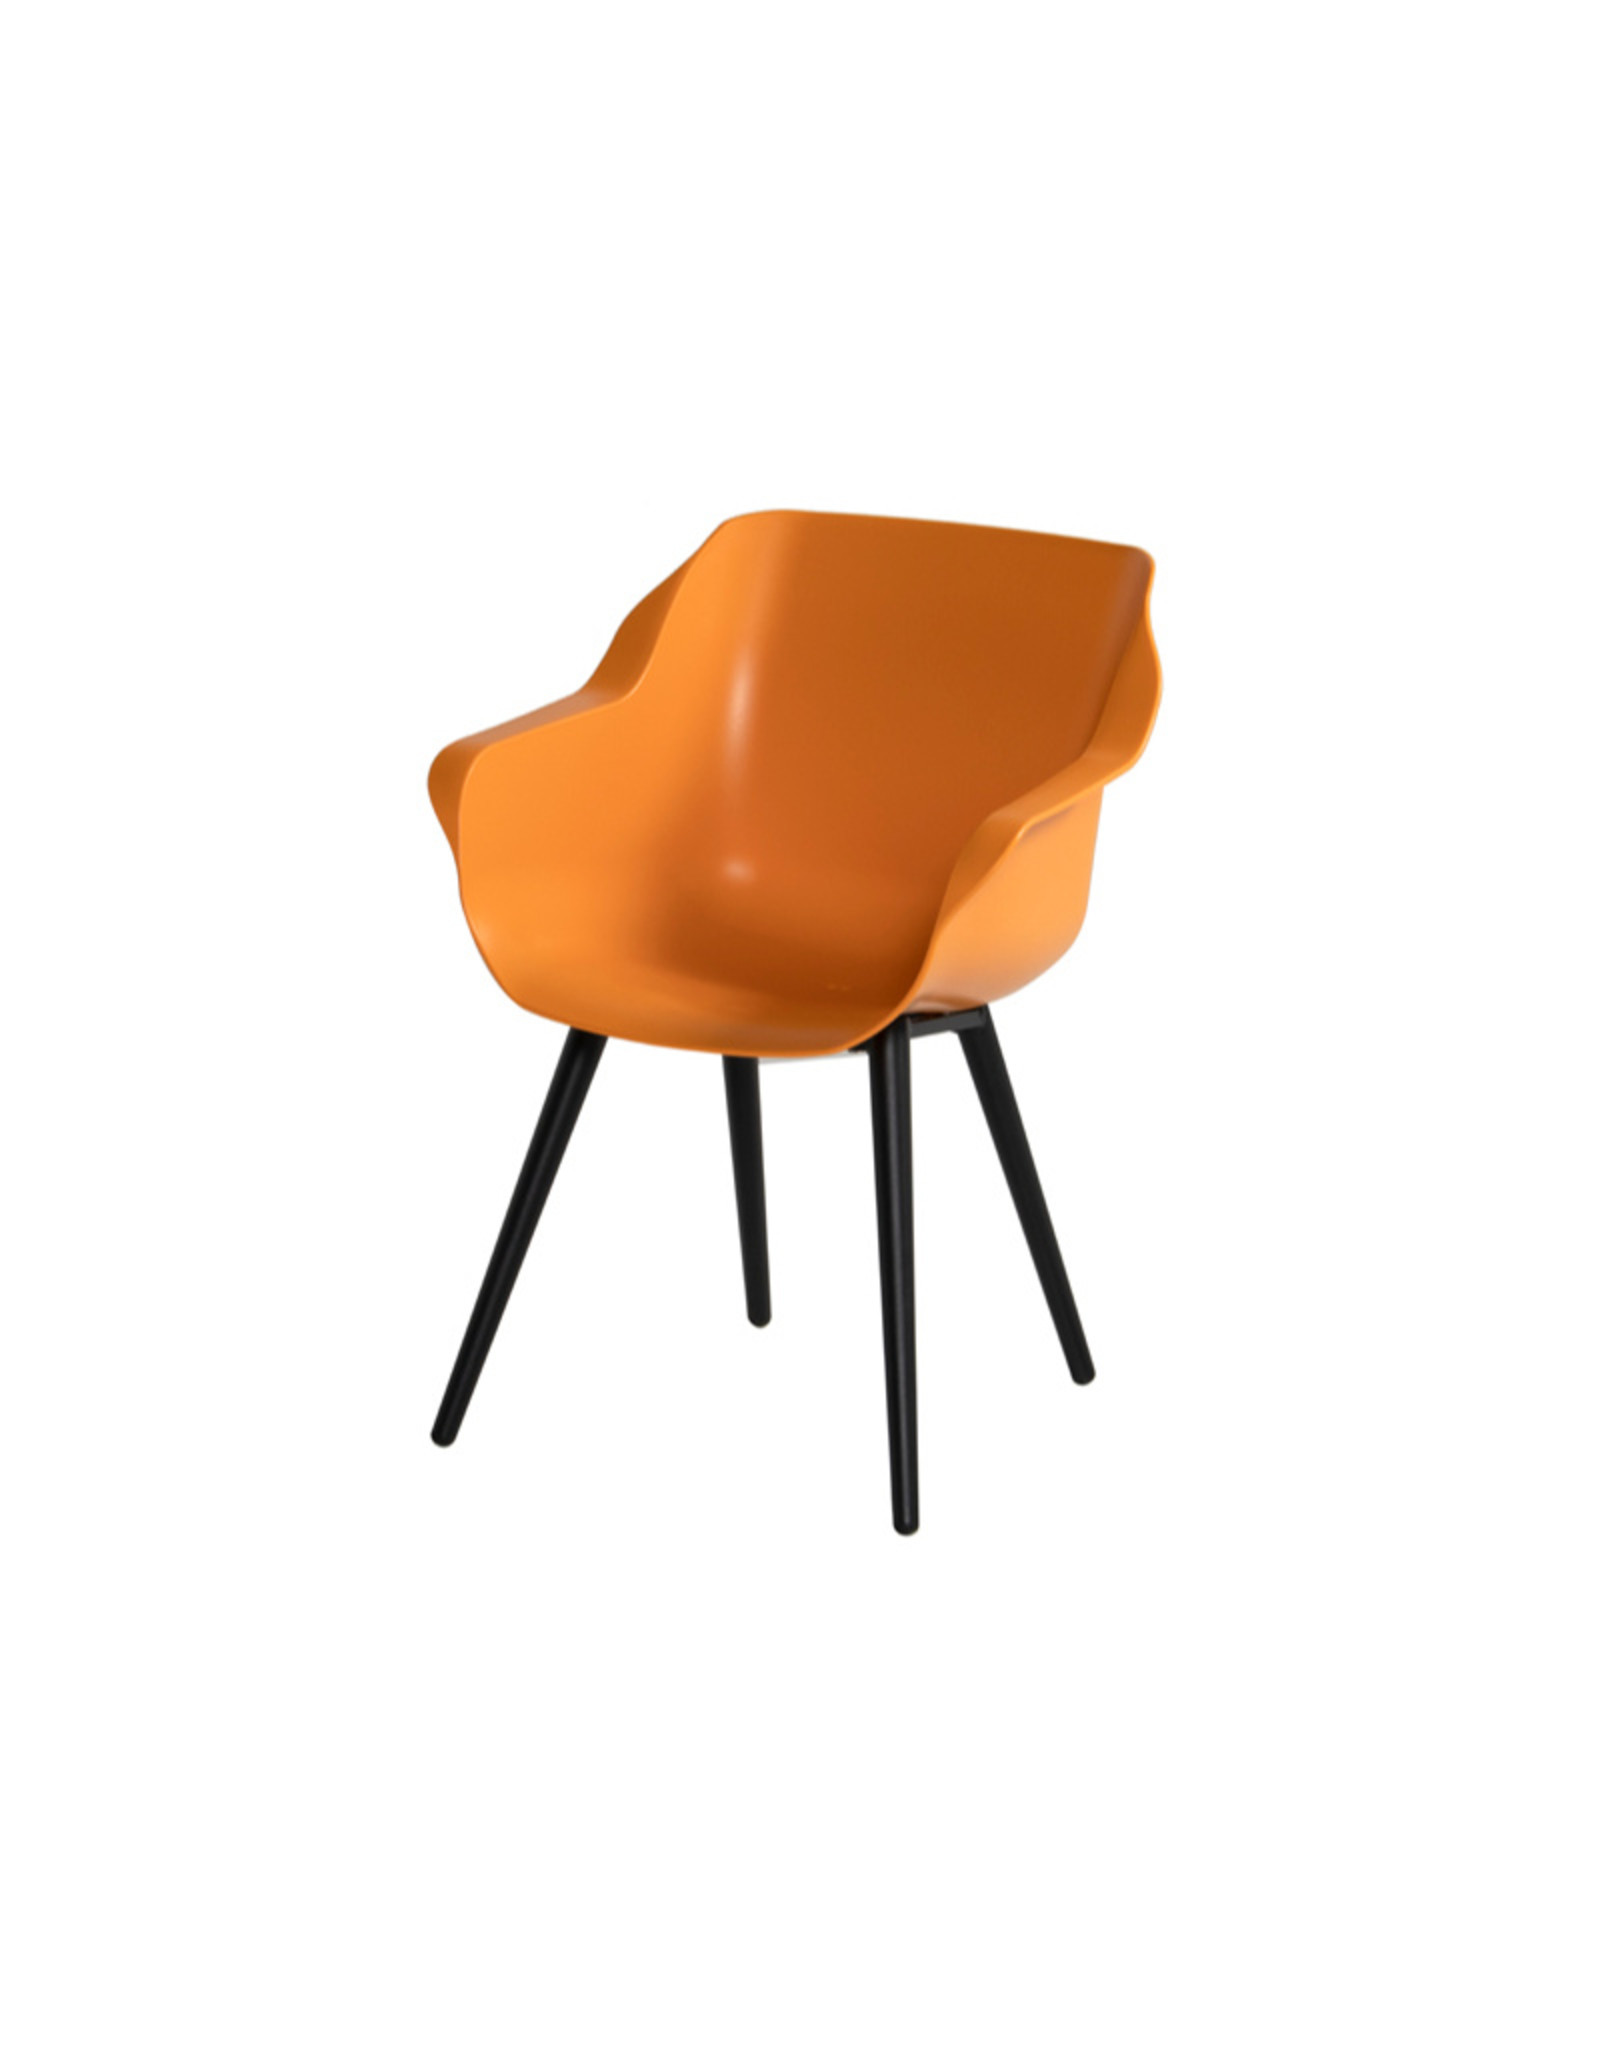 Hartman HARTMAN SOPHIE STUDIO ARMCHAIR with colored seat and carbon black legs